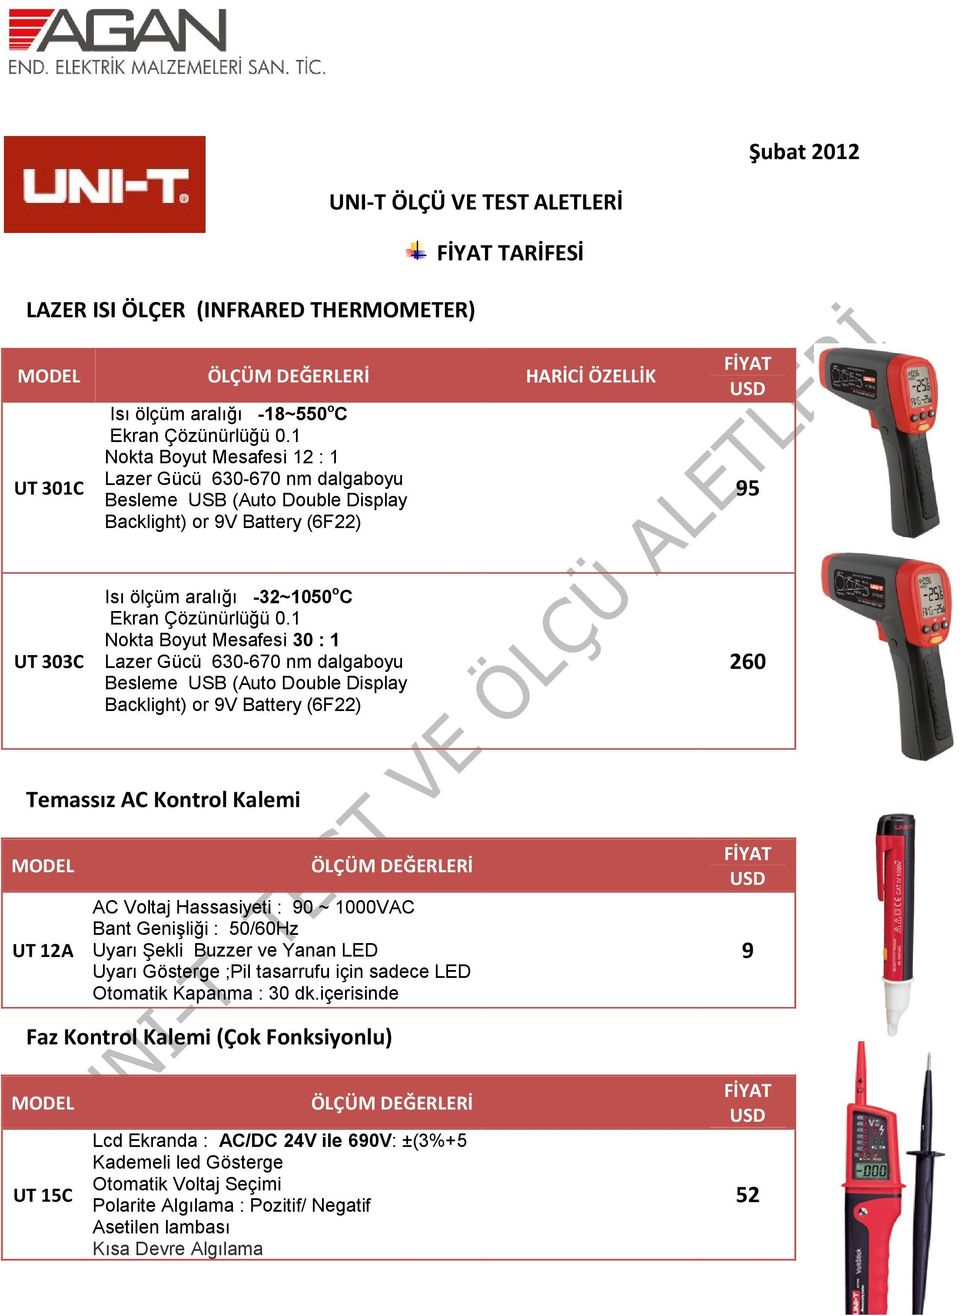 1 Nokta Boyut Mesafesi 30 : 1 Lazer Gücü 630-670 nm dalgaboyu Besleme USB (Auto Double Display Backlight) or 9V Battery (6F22) 260 Temassız AC Kontrol Kalemi UT 12A AC Voltaj Hassasiyeti : 90 ~